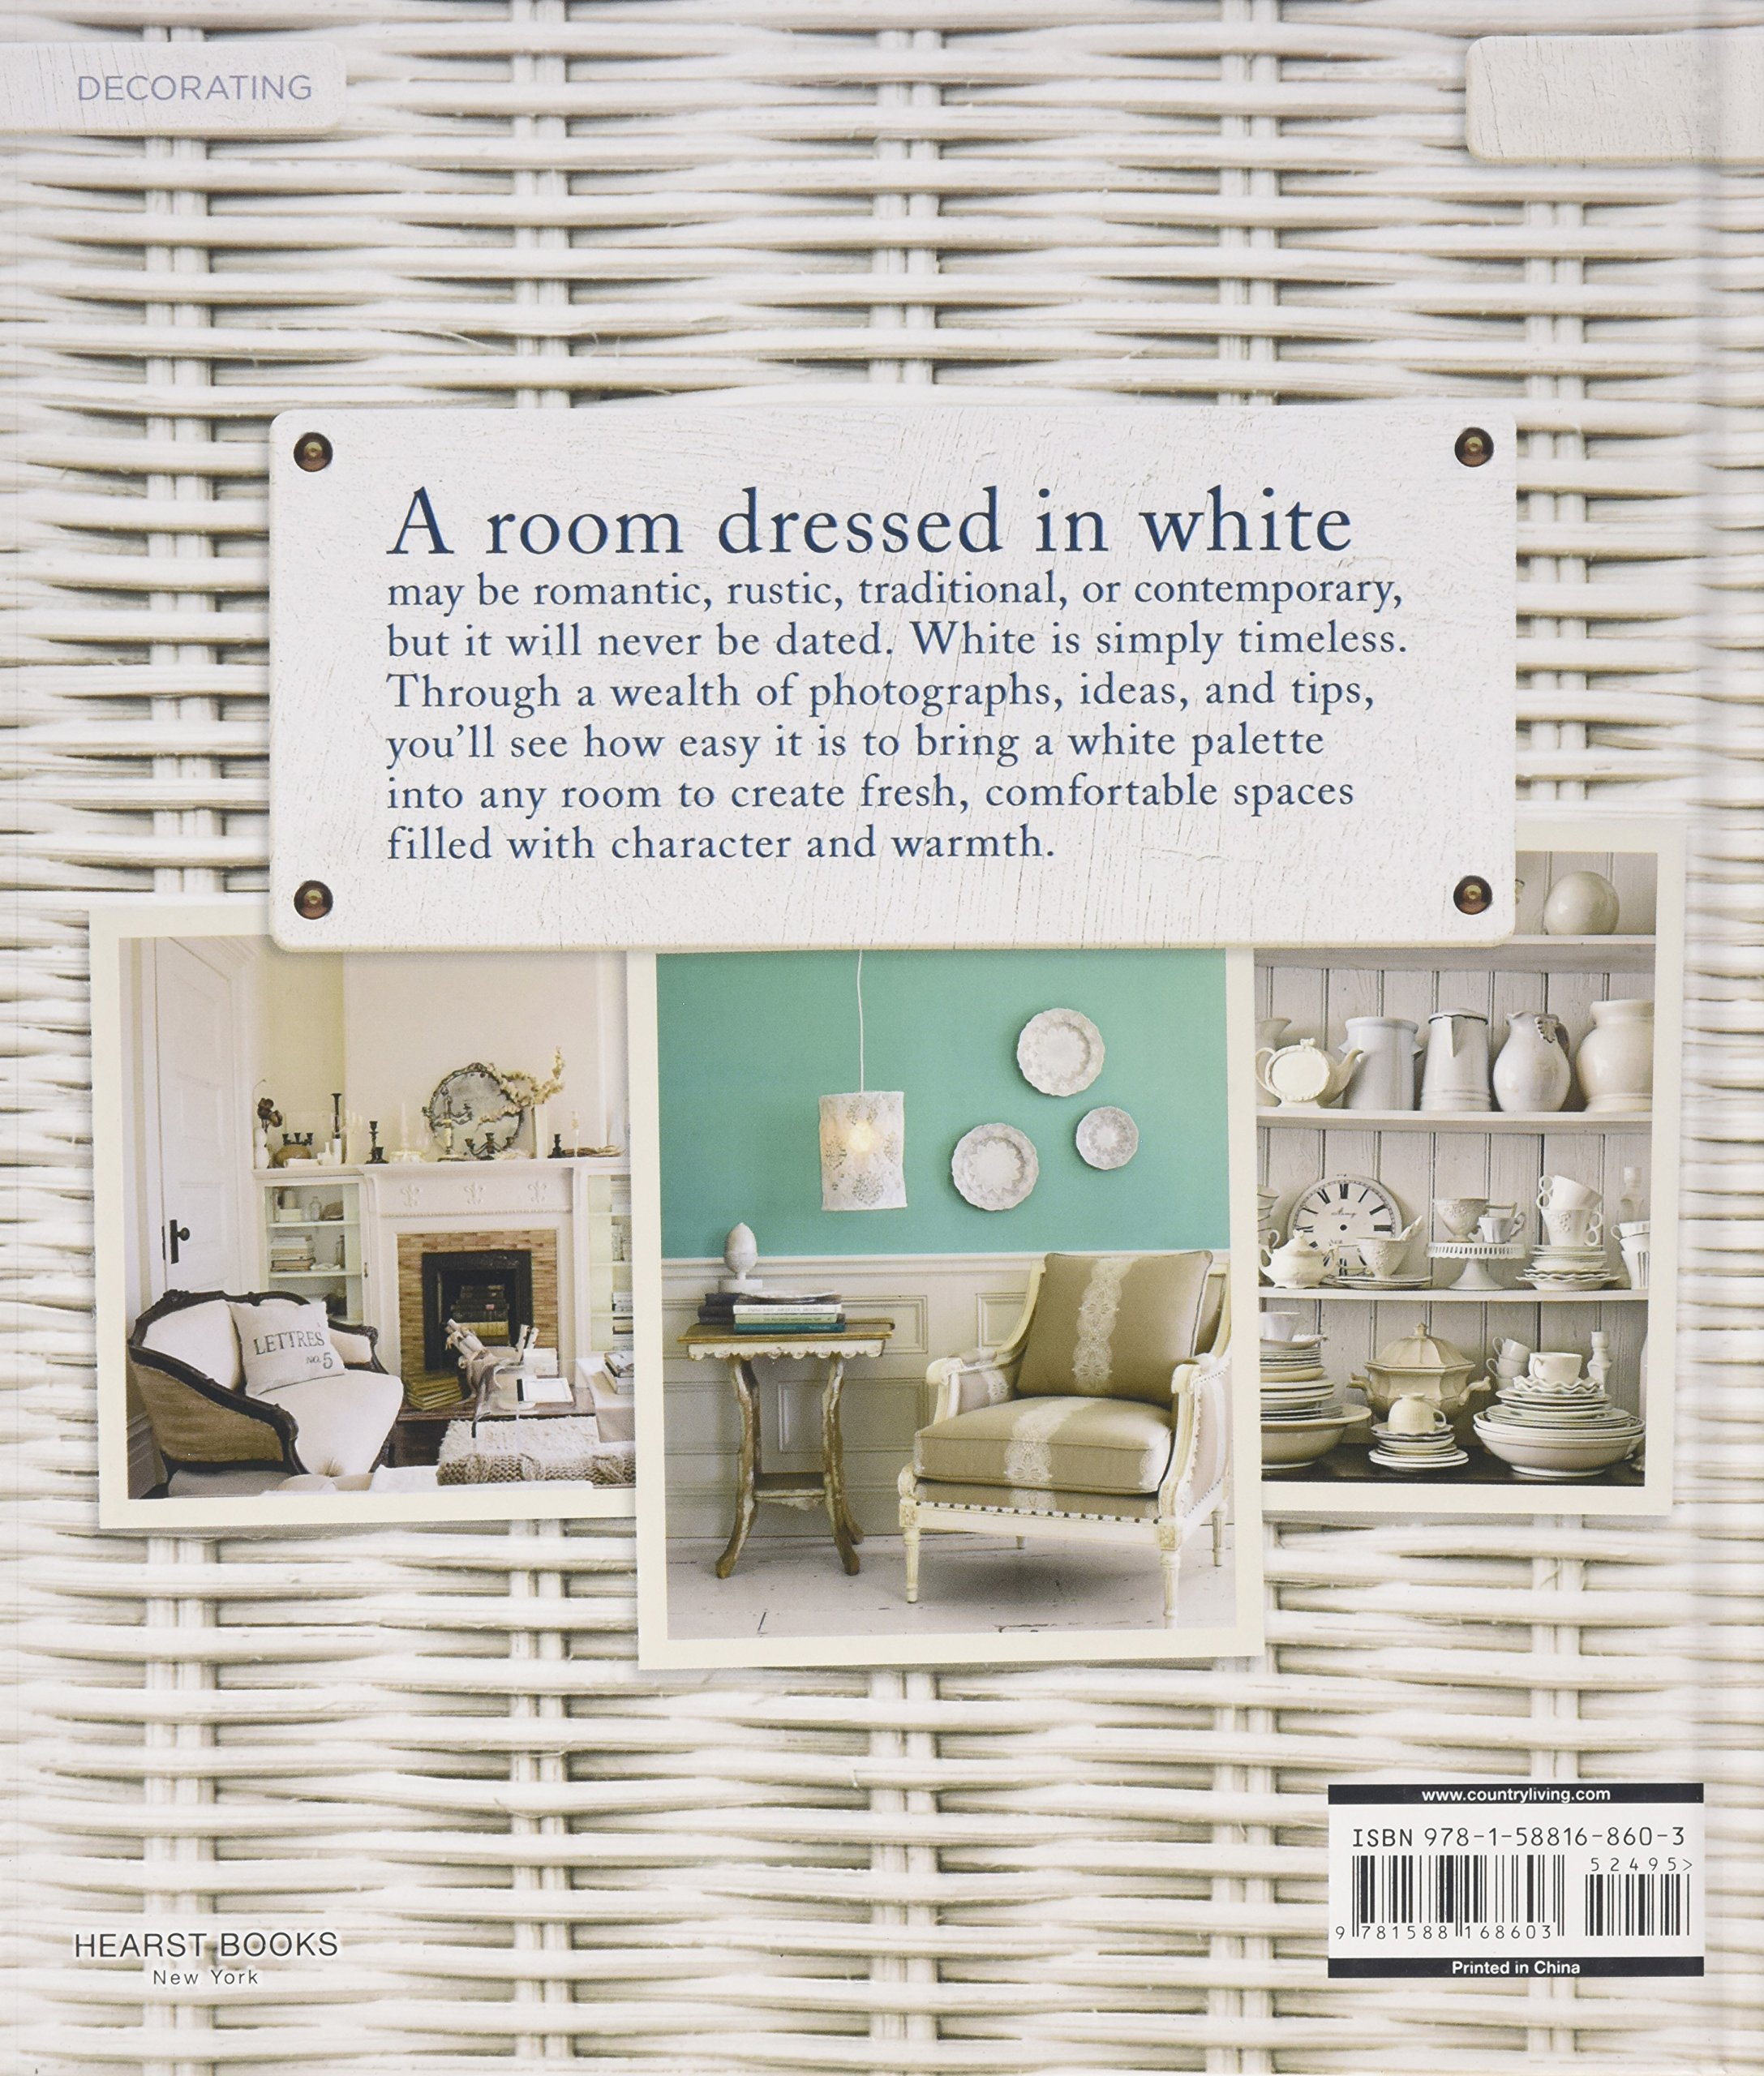 Country Living Decorating With White: Country Living, Gina Hyams:  9781588168603: Amazon.com: Books